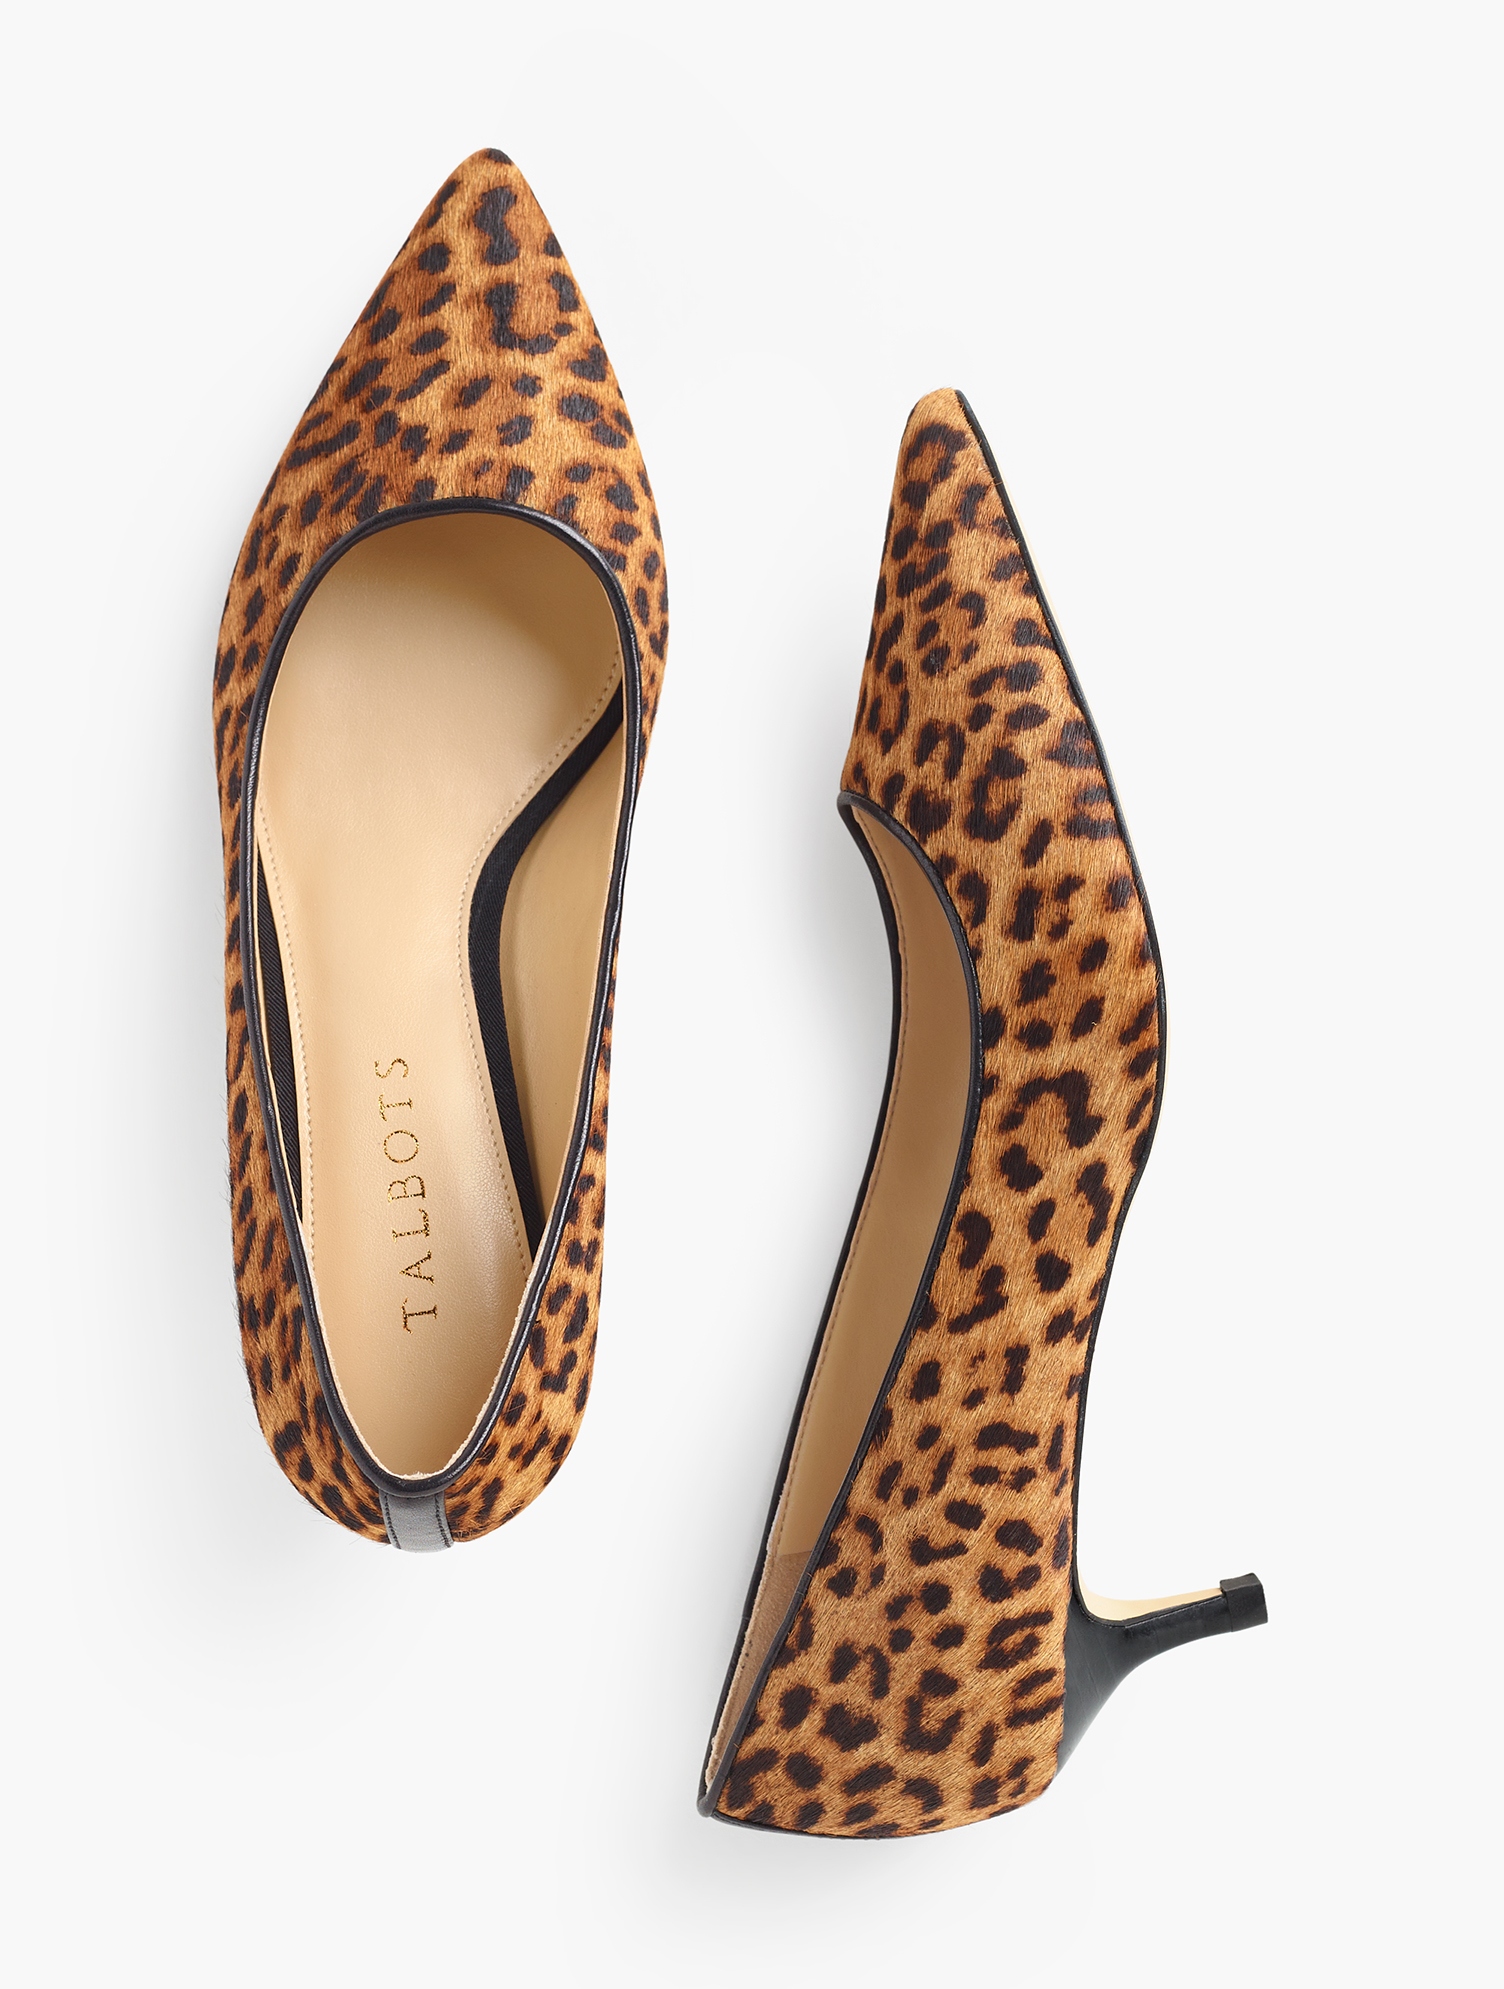 The Sylvie. Our classic kitten-heel pumps. In chic calf hair. Offered in narrow and wide sizes. Features 1 3/4 inches heelPointed toe3MM Memory foam footbedImported Material: 100% Leather Sylvie Kitten Heel Pumps - Calf Hair - Classic Leopard - 9-1/2W Talbots